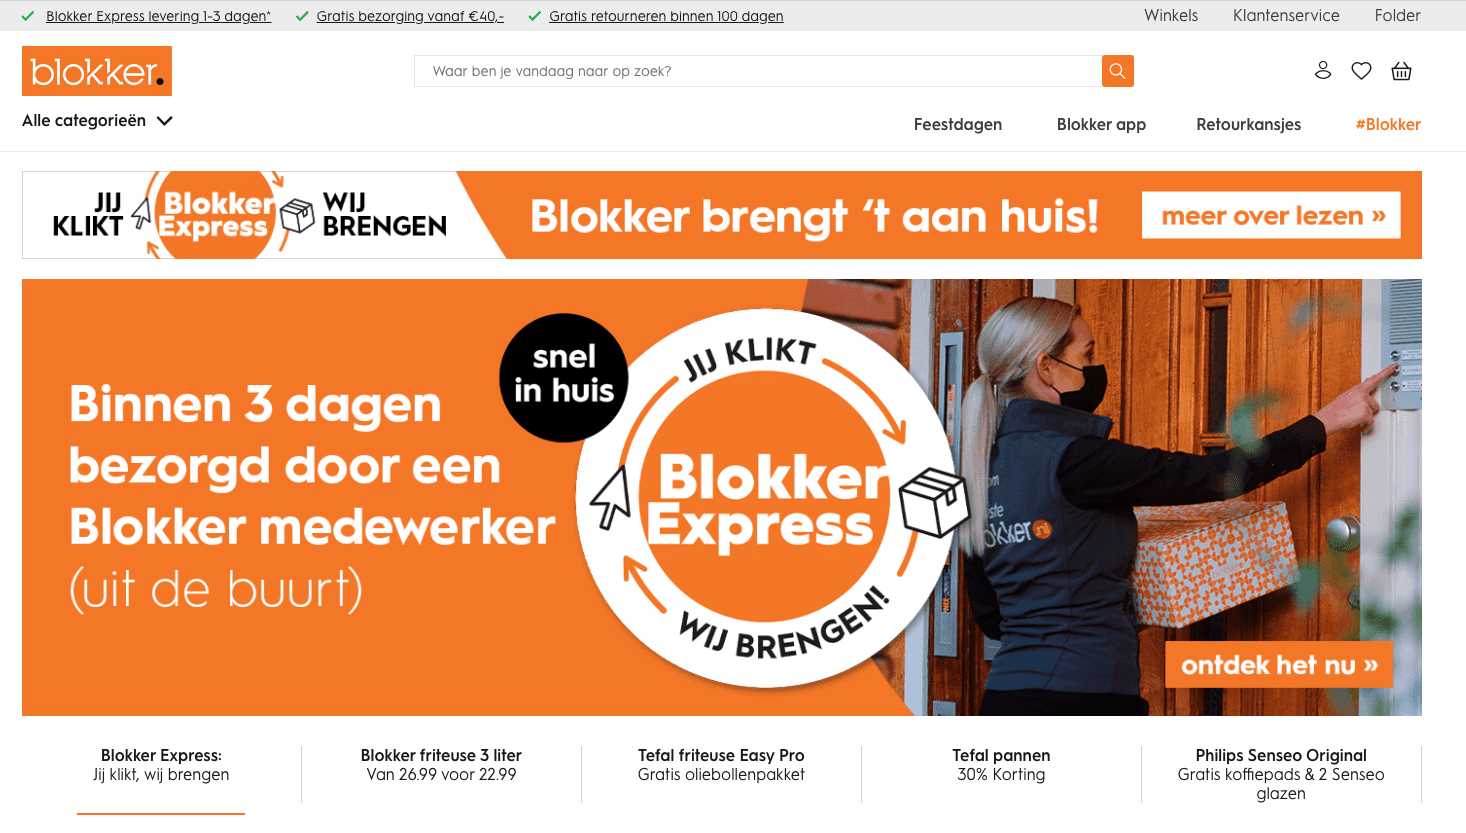 Screenshot van de website van Blokker.